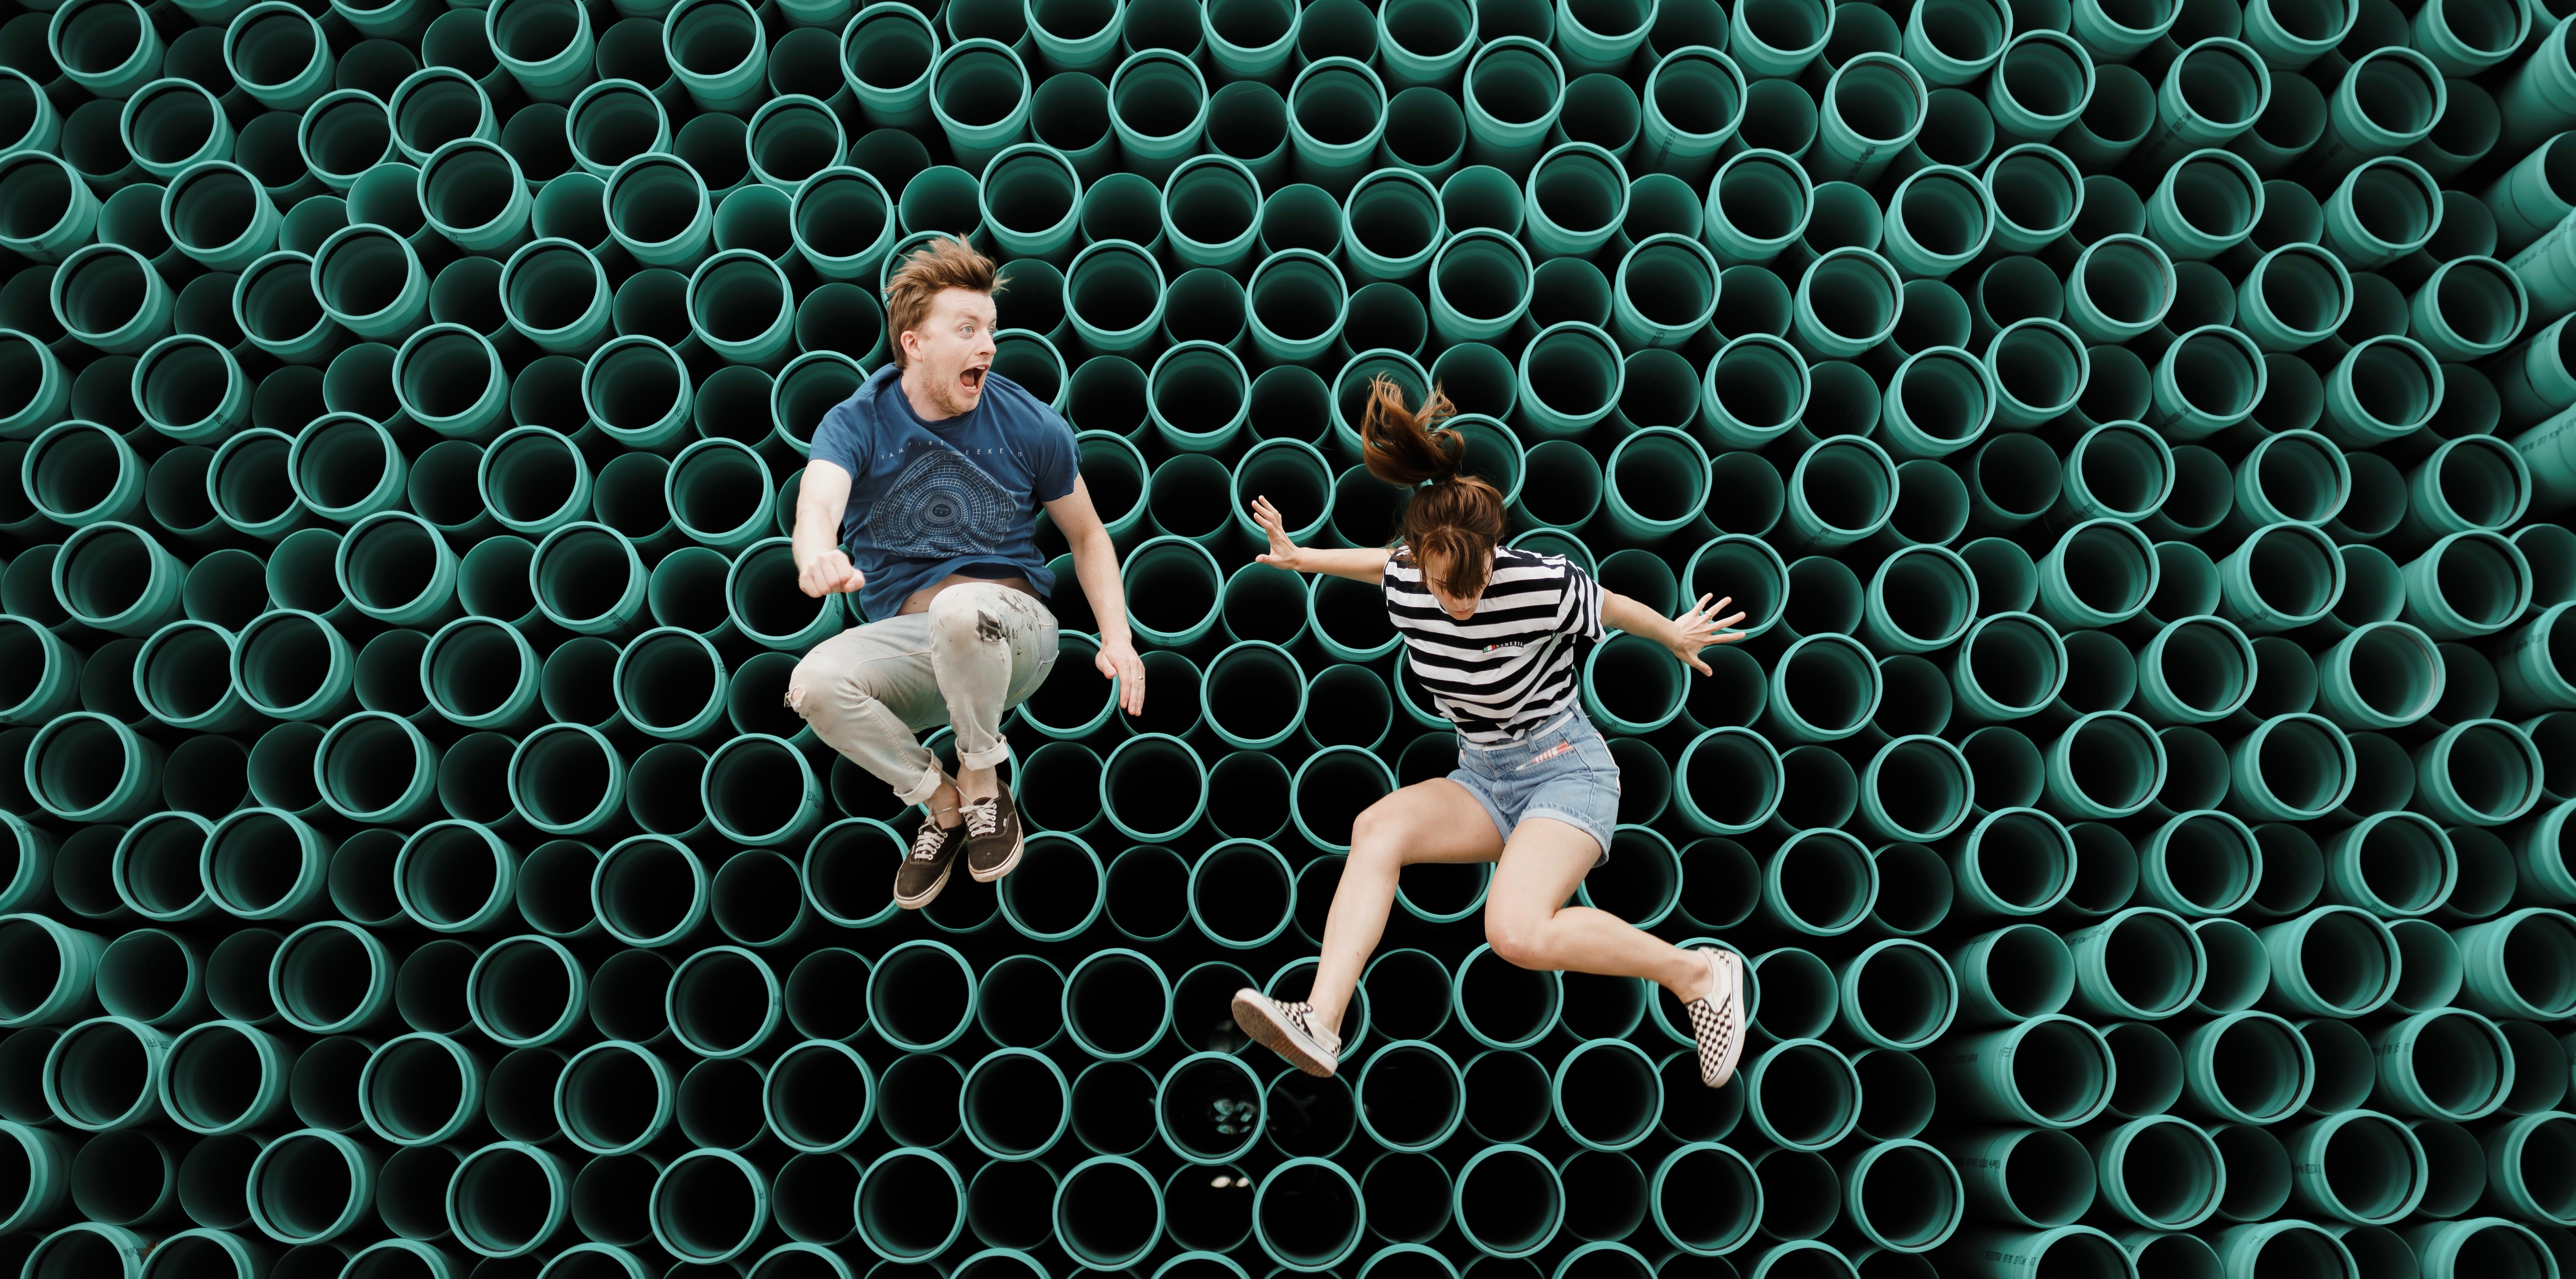 guy and girl jumping against textured wall